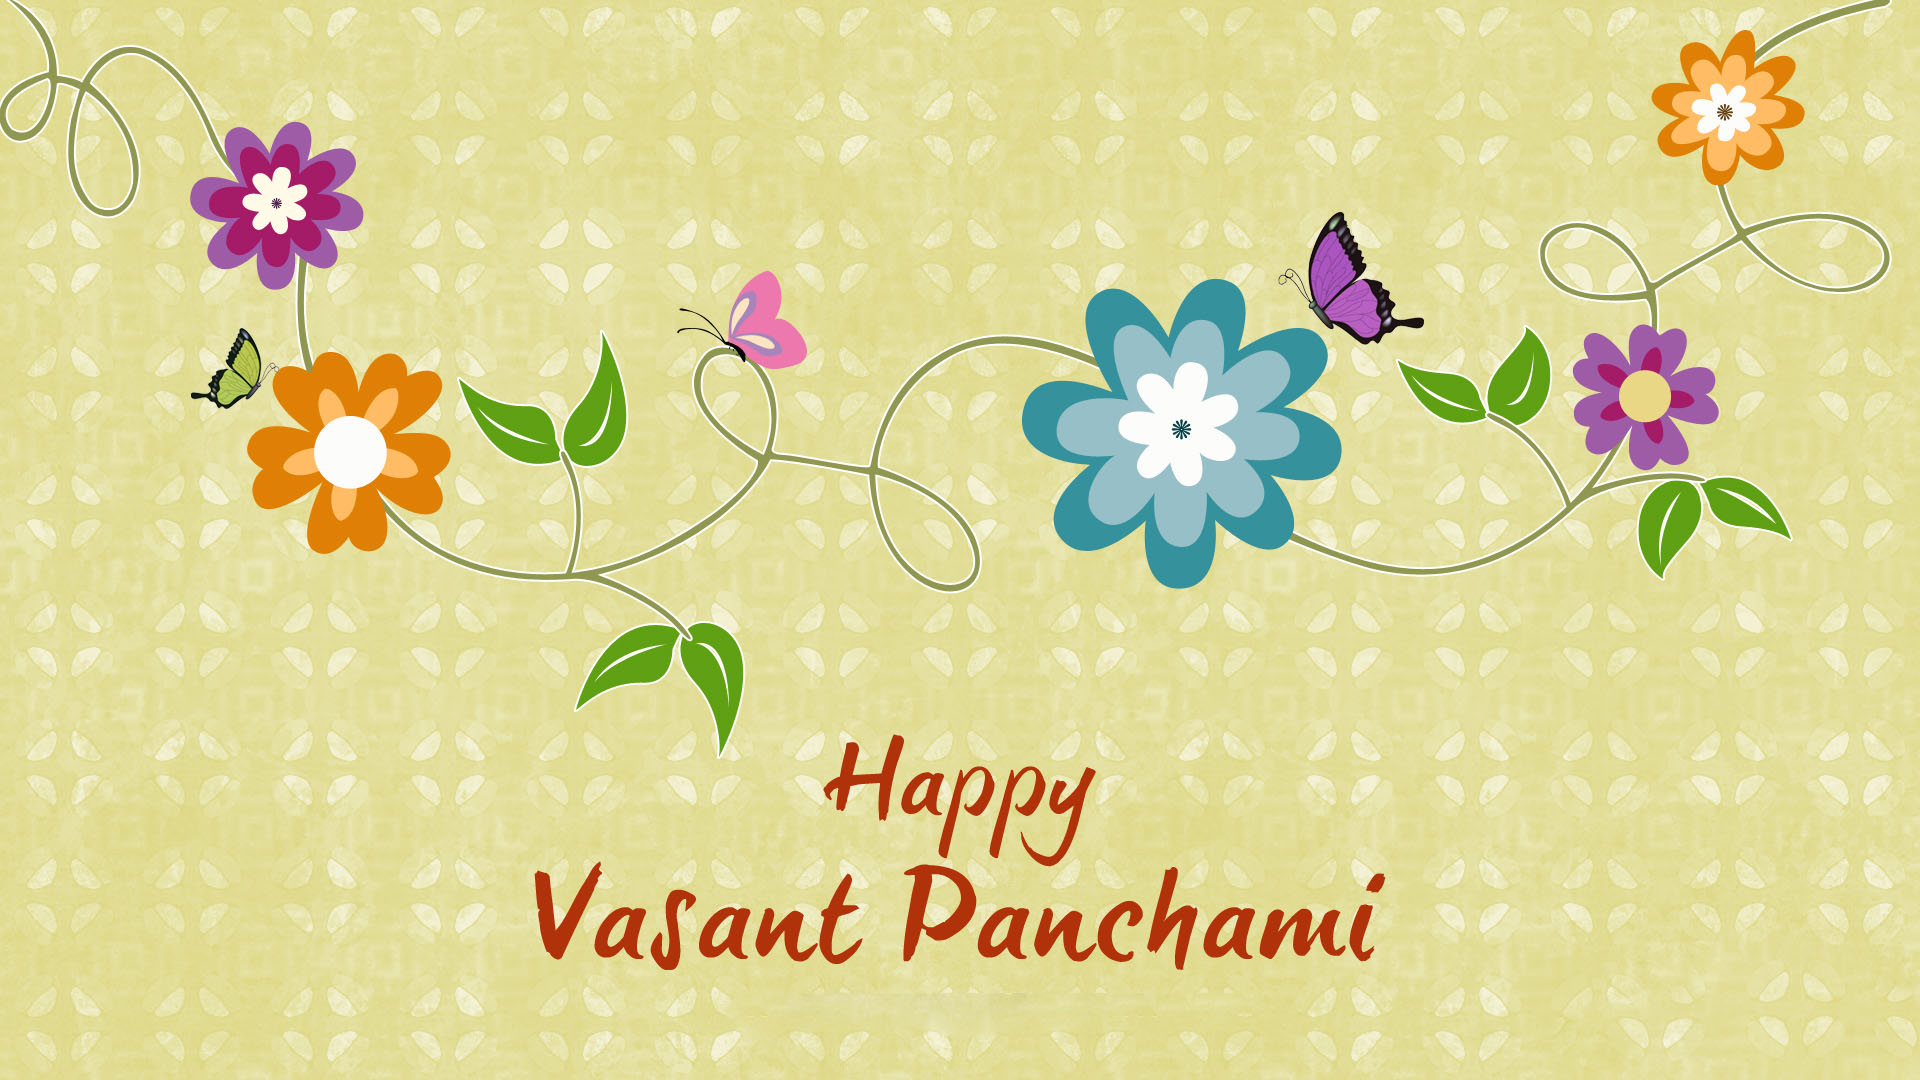 Vasant Panchami Images With Hindi Quotes